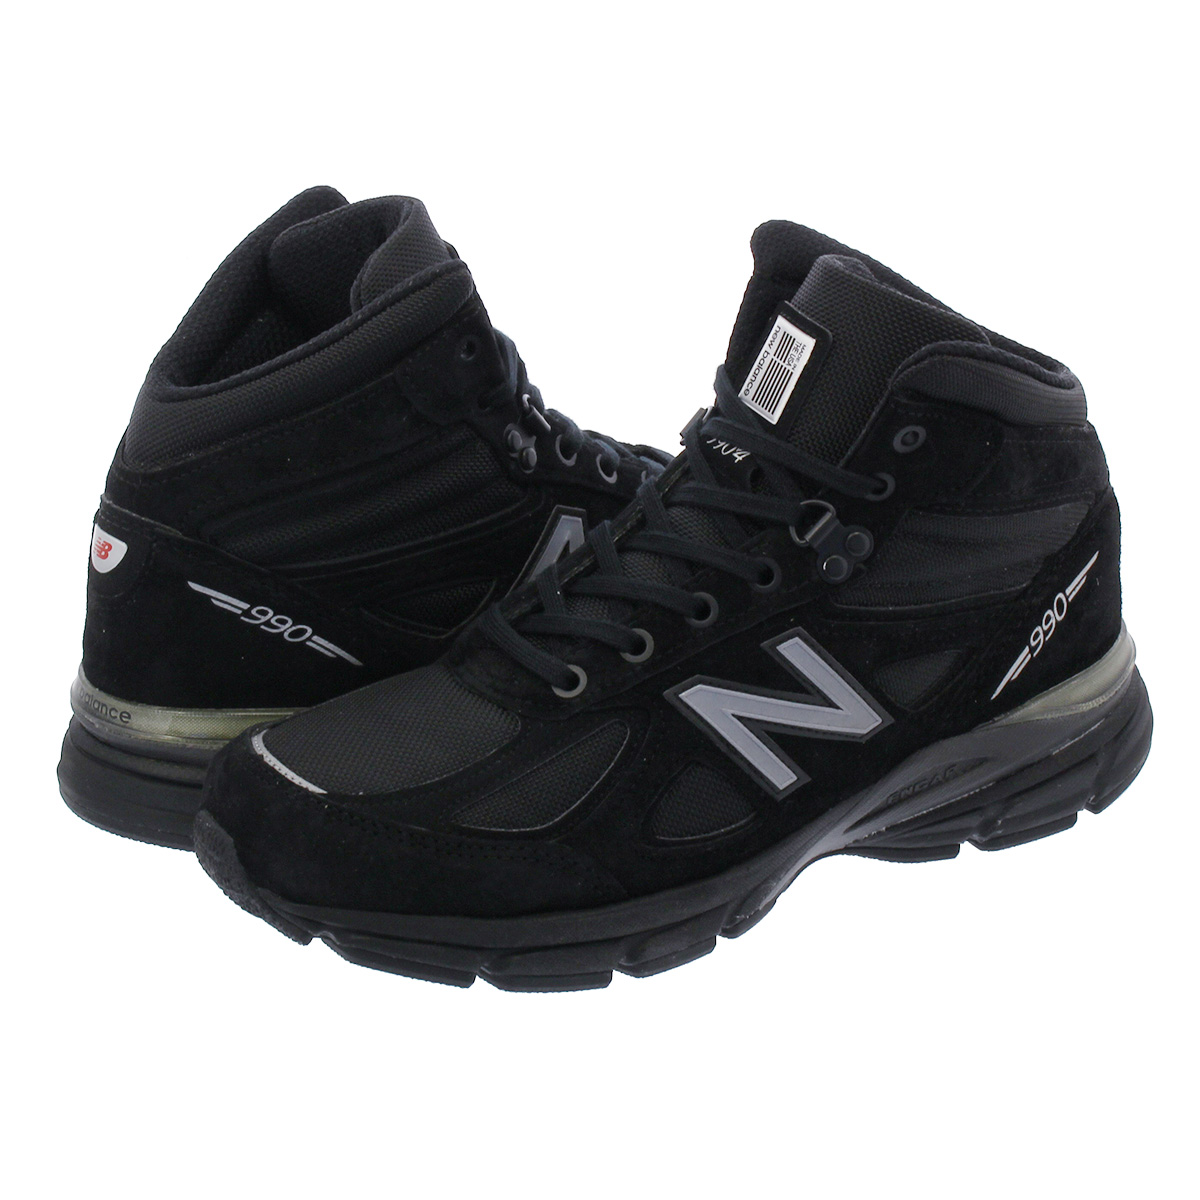 new product d313d 974b3 NEW BALANCE MO990BK4 New Balance MO990 BK4 BLACK